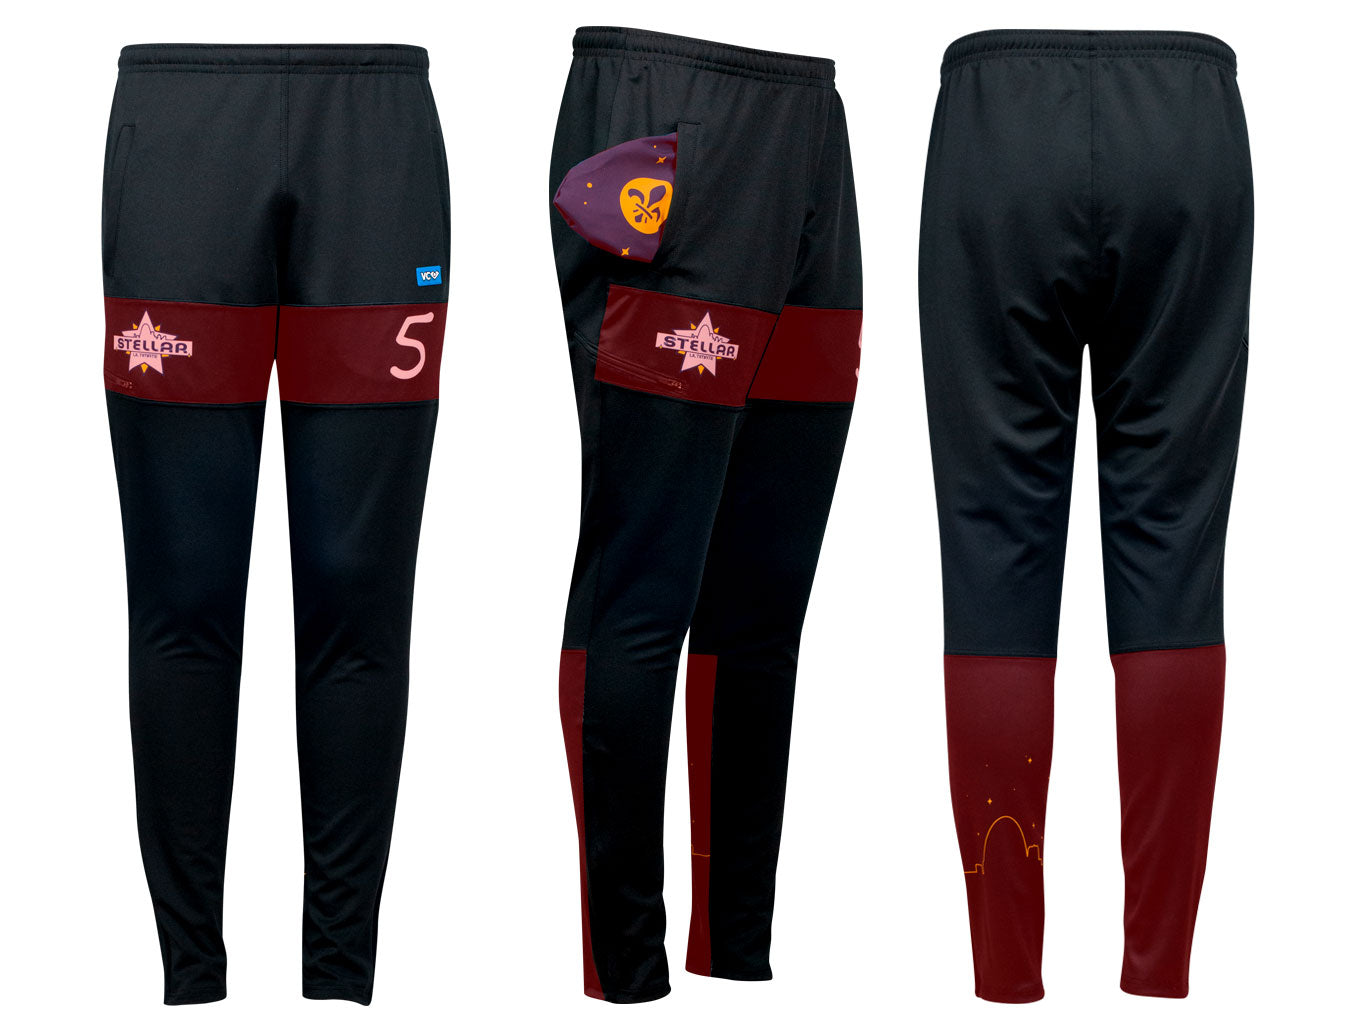 VC Training Pants sublimated areas